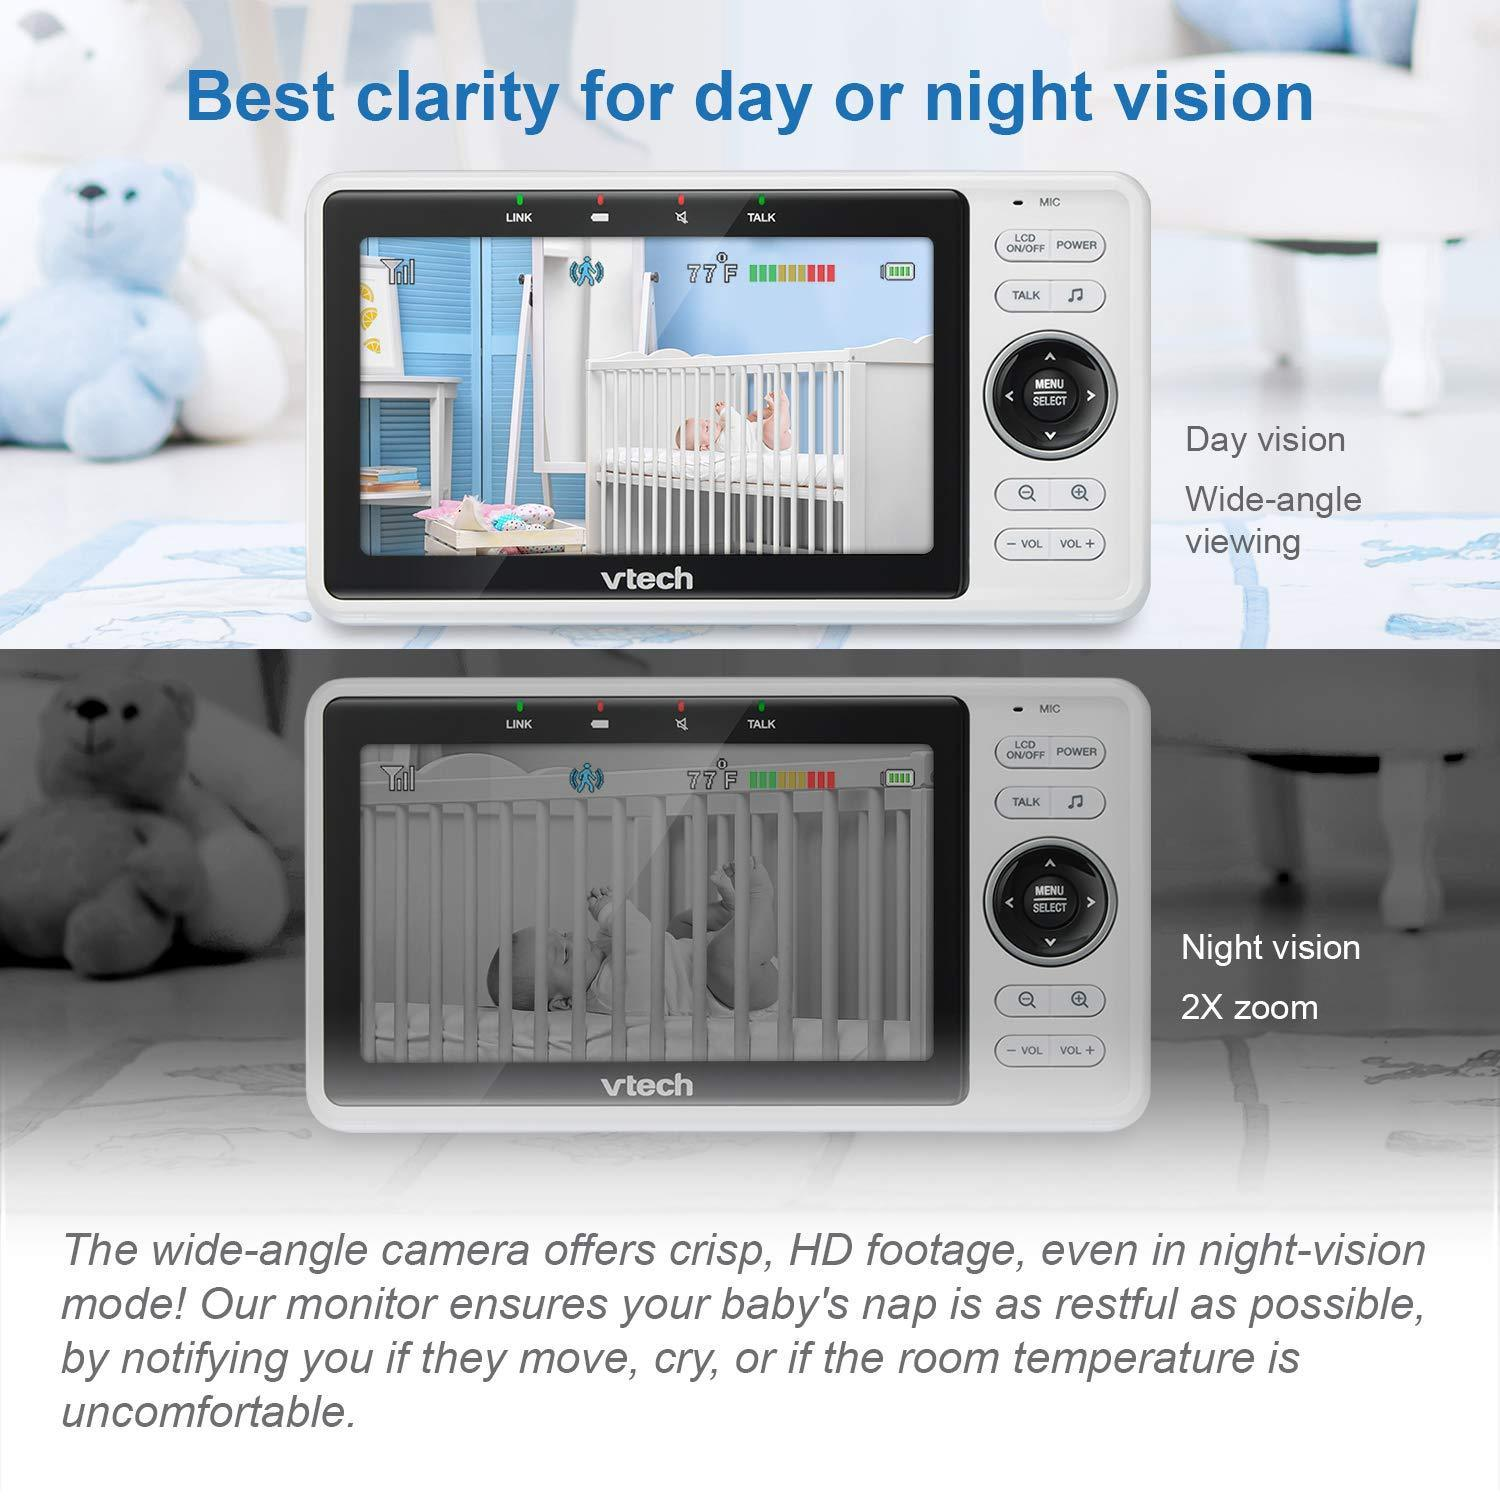 "VM901 WiFi Video Baby Monitor with Free Live Remote Access, 1080p Full HD Camera, 5"" Screen, Pan Tilt Zoom, HD Night Vision, 2-Way Audio Talk, Motion & Temperature Alert, Work with iOS, Android"